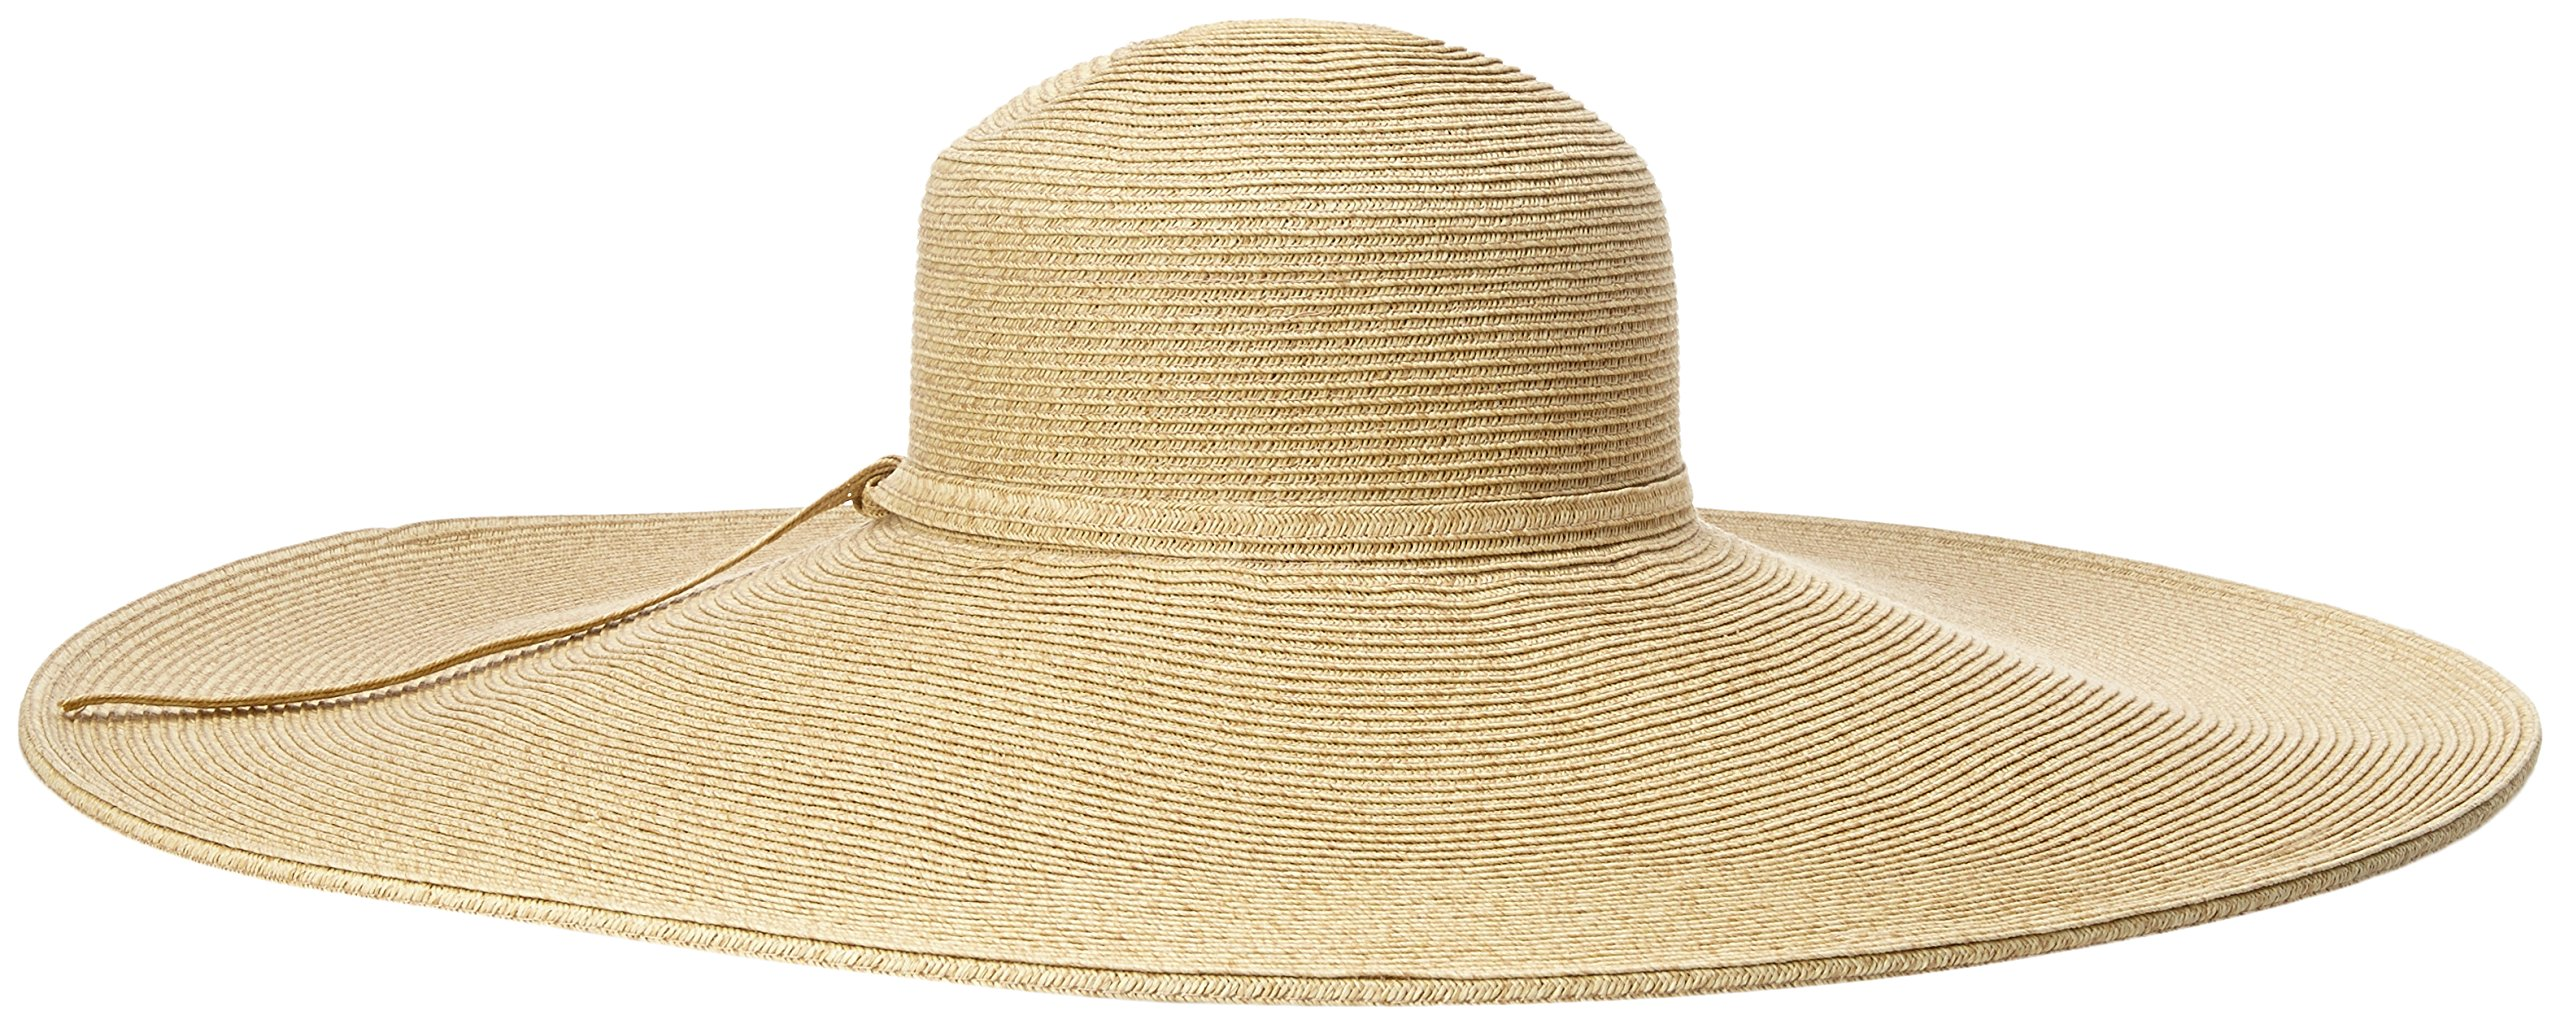 San Diego Hat Company Women's Ultrabraid X Large Brim Hat,Toast,One Size by San Diego Hat Company